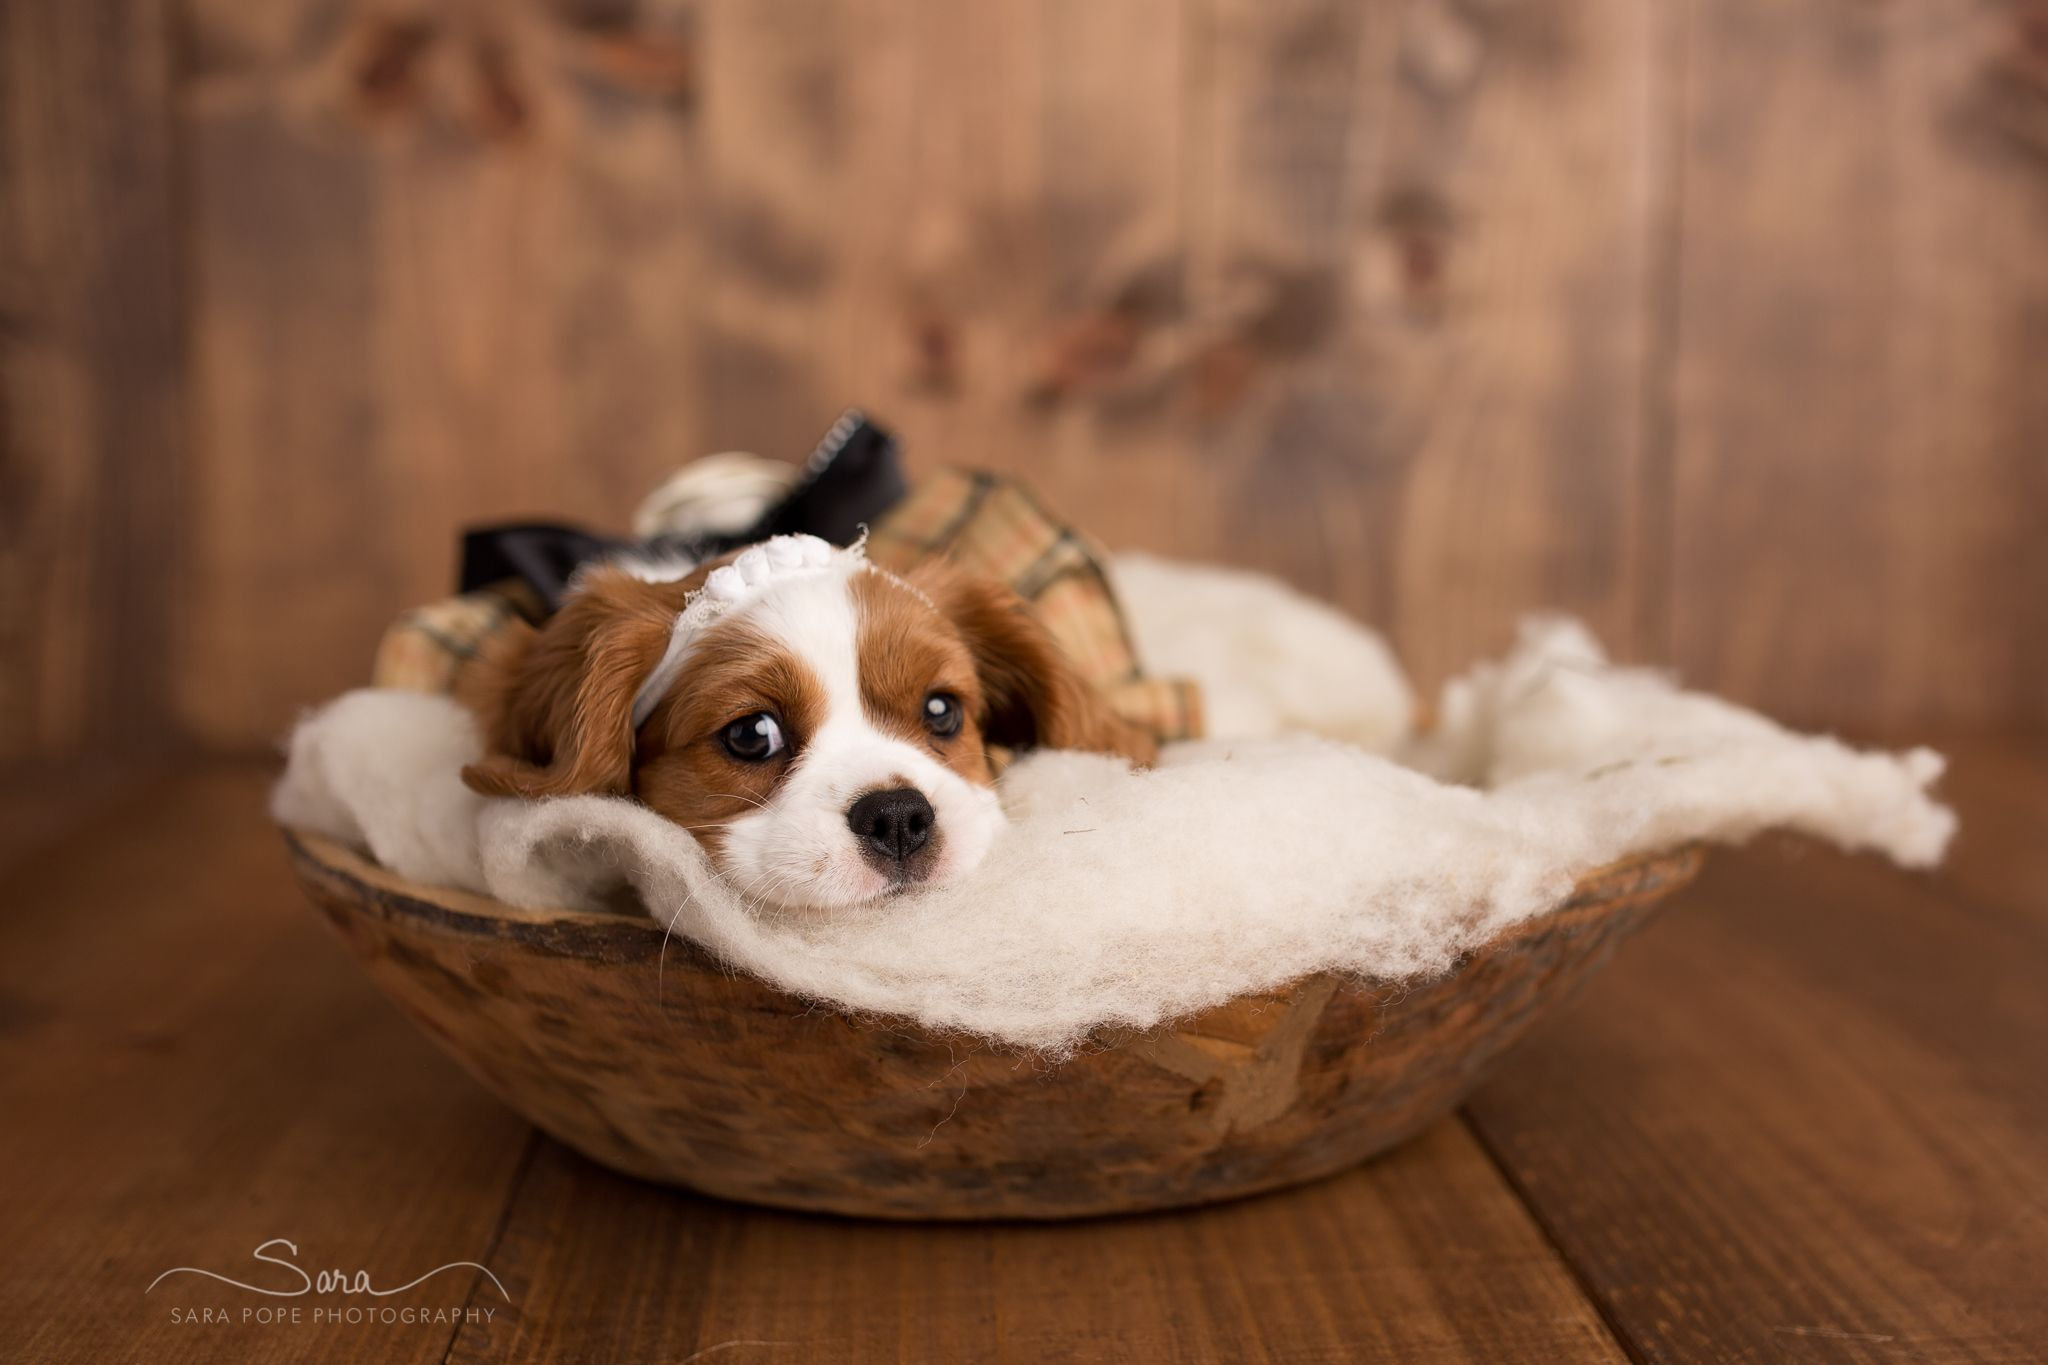 Cavalier King Charles Spaniel Puppy portraits photos.  Sara Pope Photography, Brentwood, CA.  Eight week old Emme <3